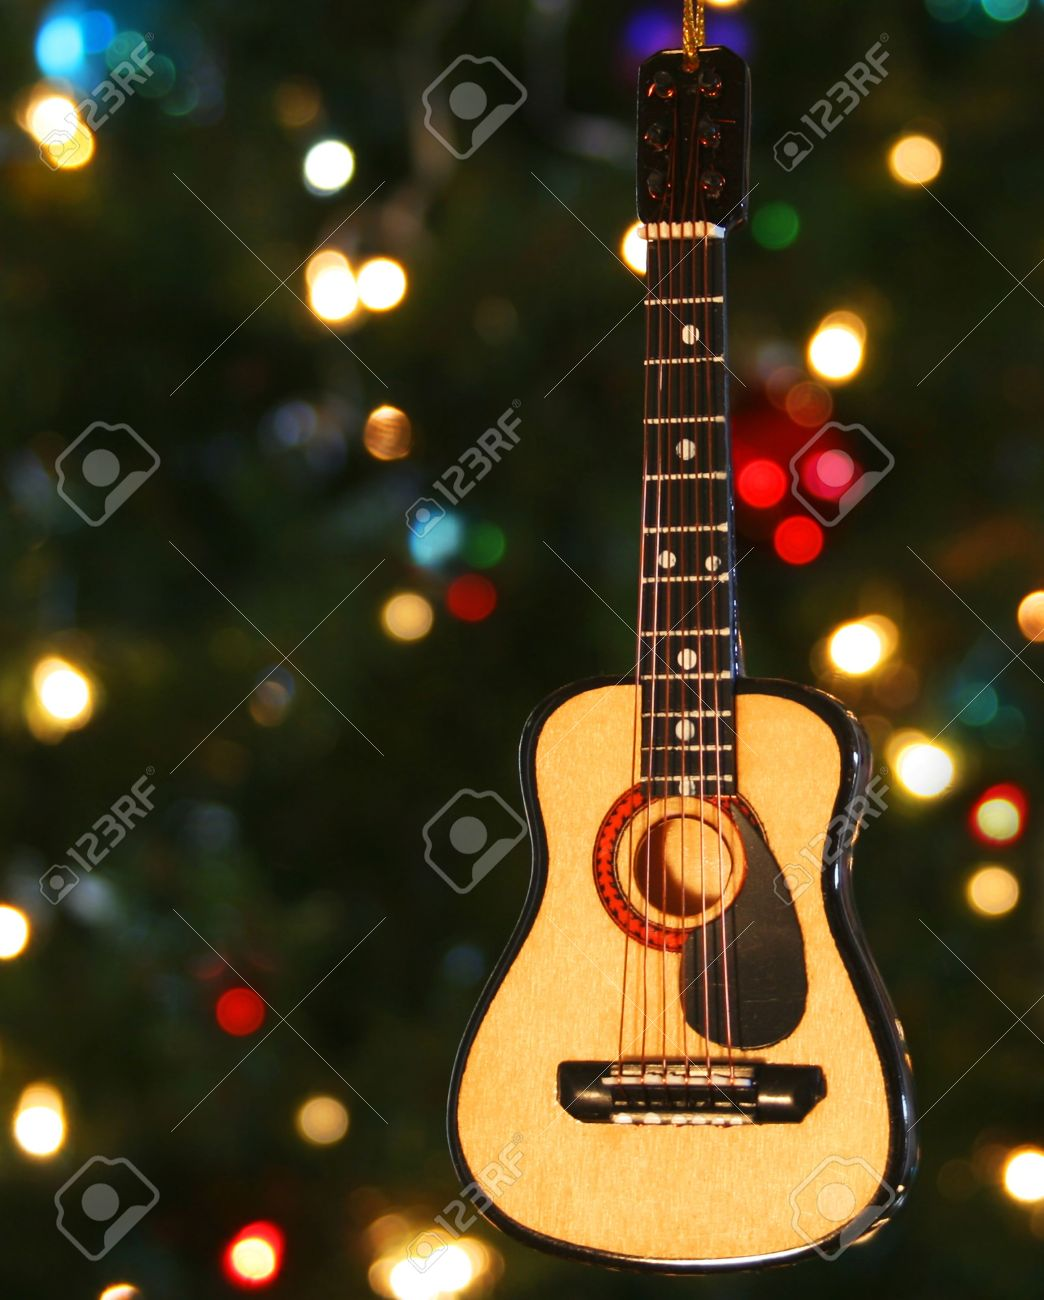 A Folk Guitar Ornament And Lights On A Christmas Tree Stock Photo ...